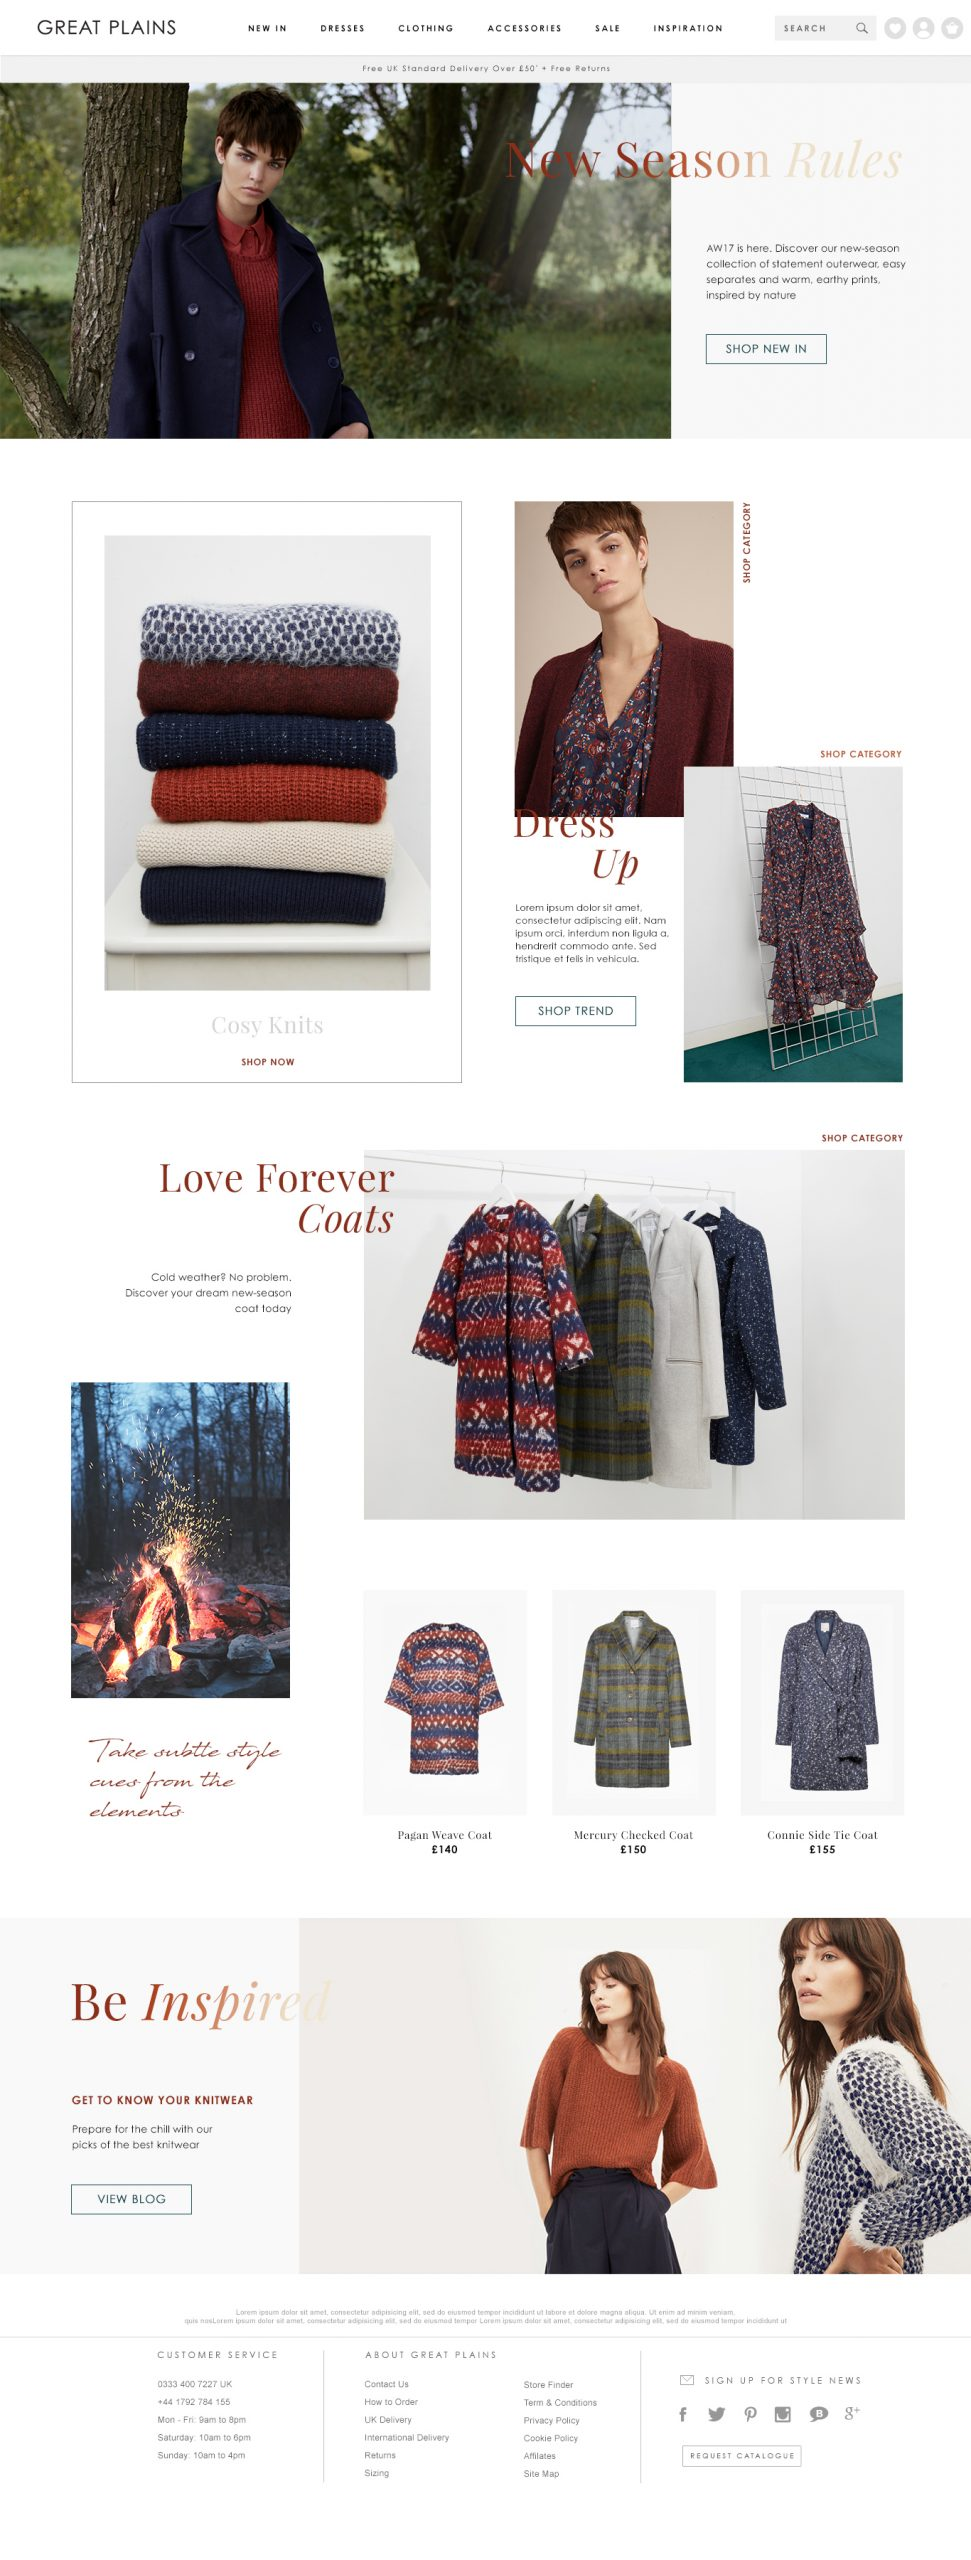 Great Plains AW17 Homepage